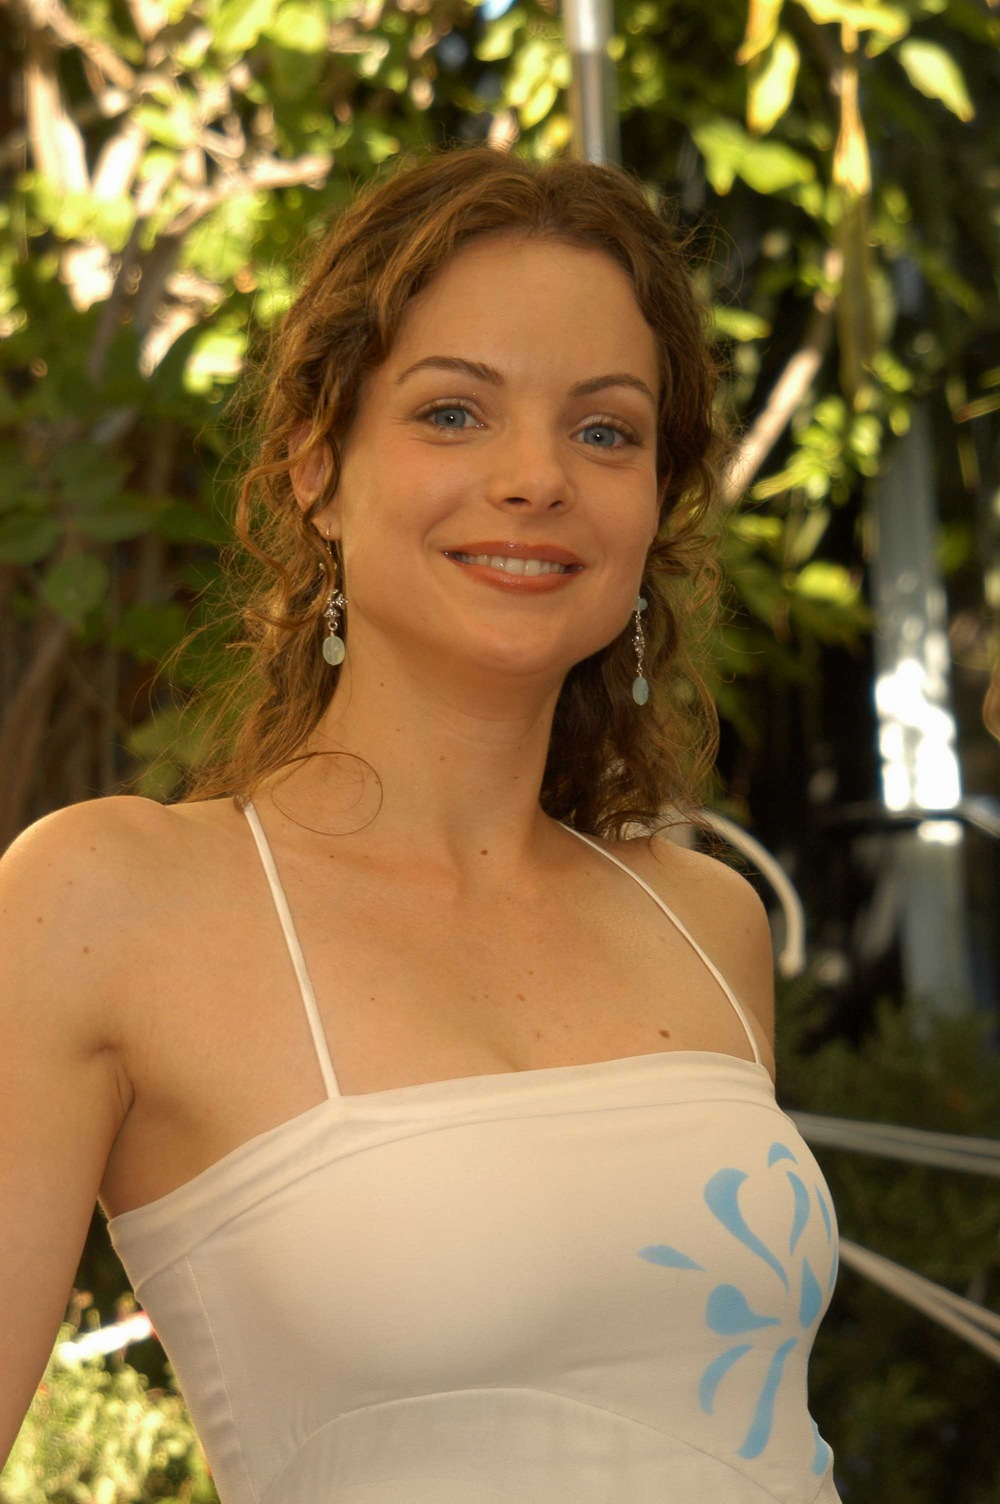 Kimberly Williams en robe moulante